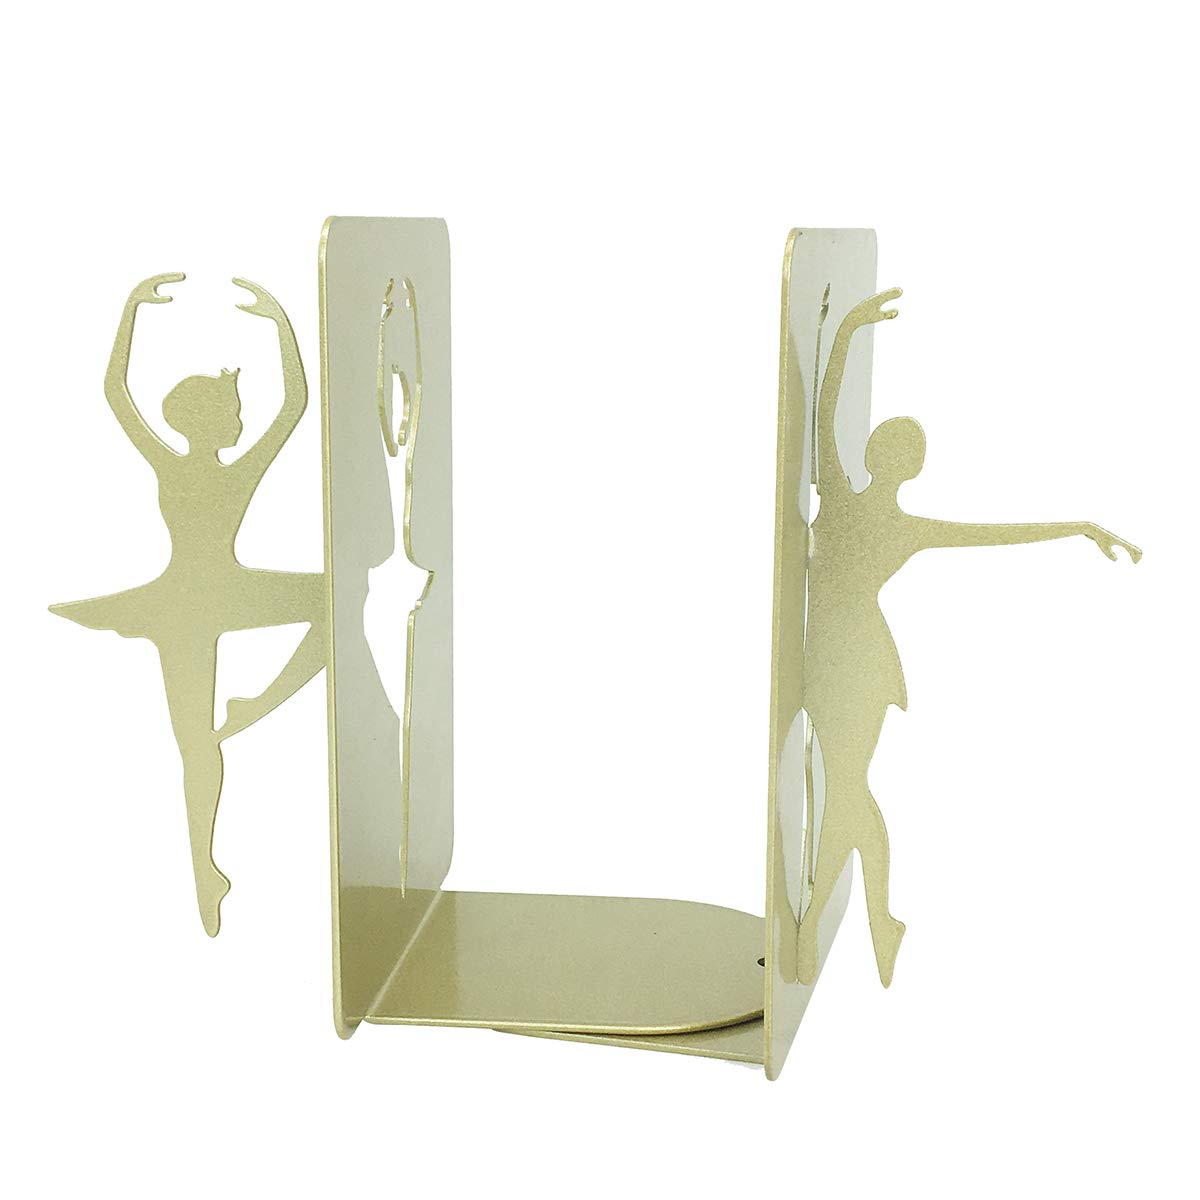 PandS Style A Gold Ballerina Bookends. Heavy Duty Iron. for Home, Office and Dance Studio.